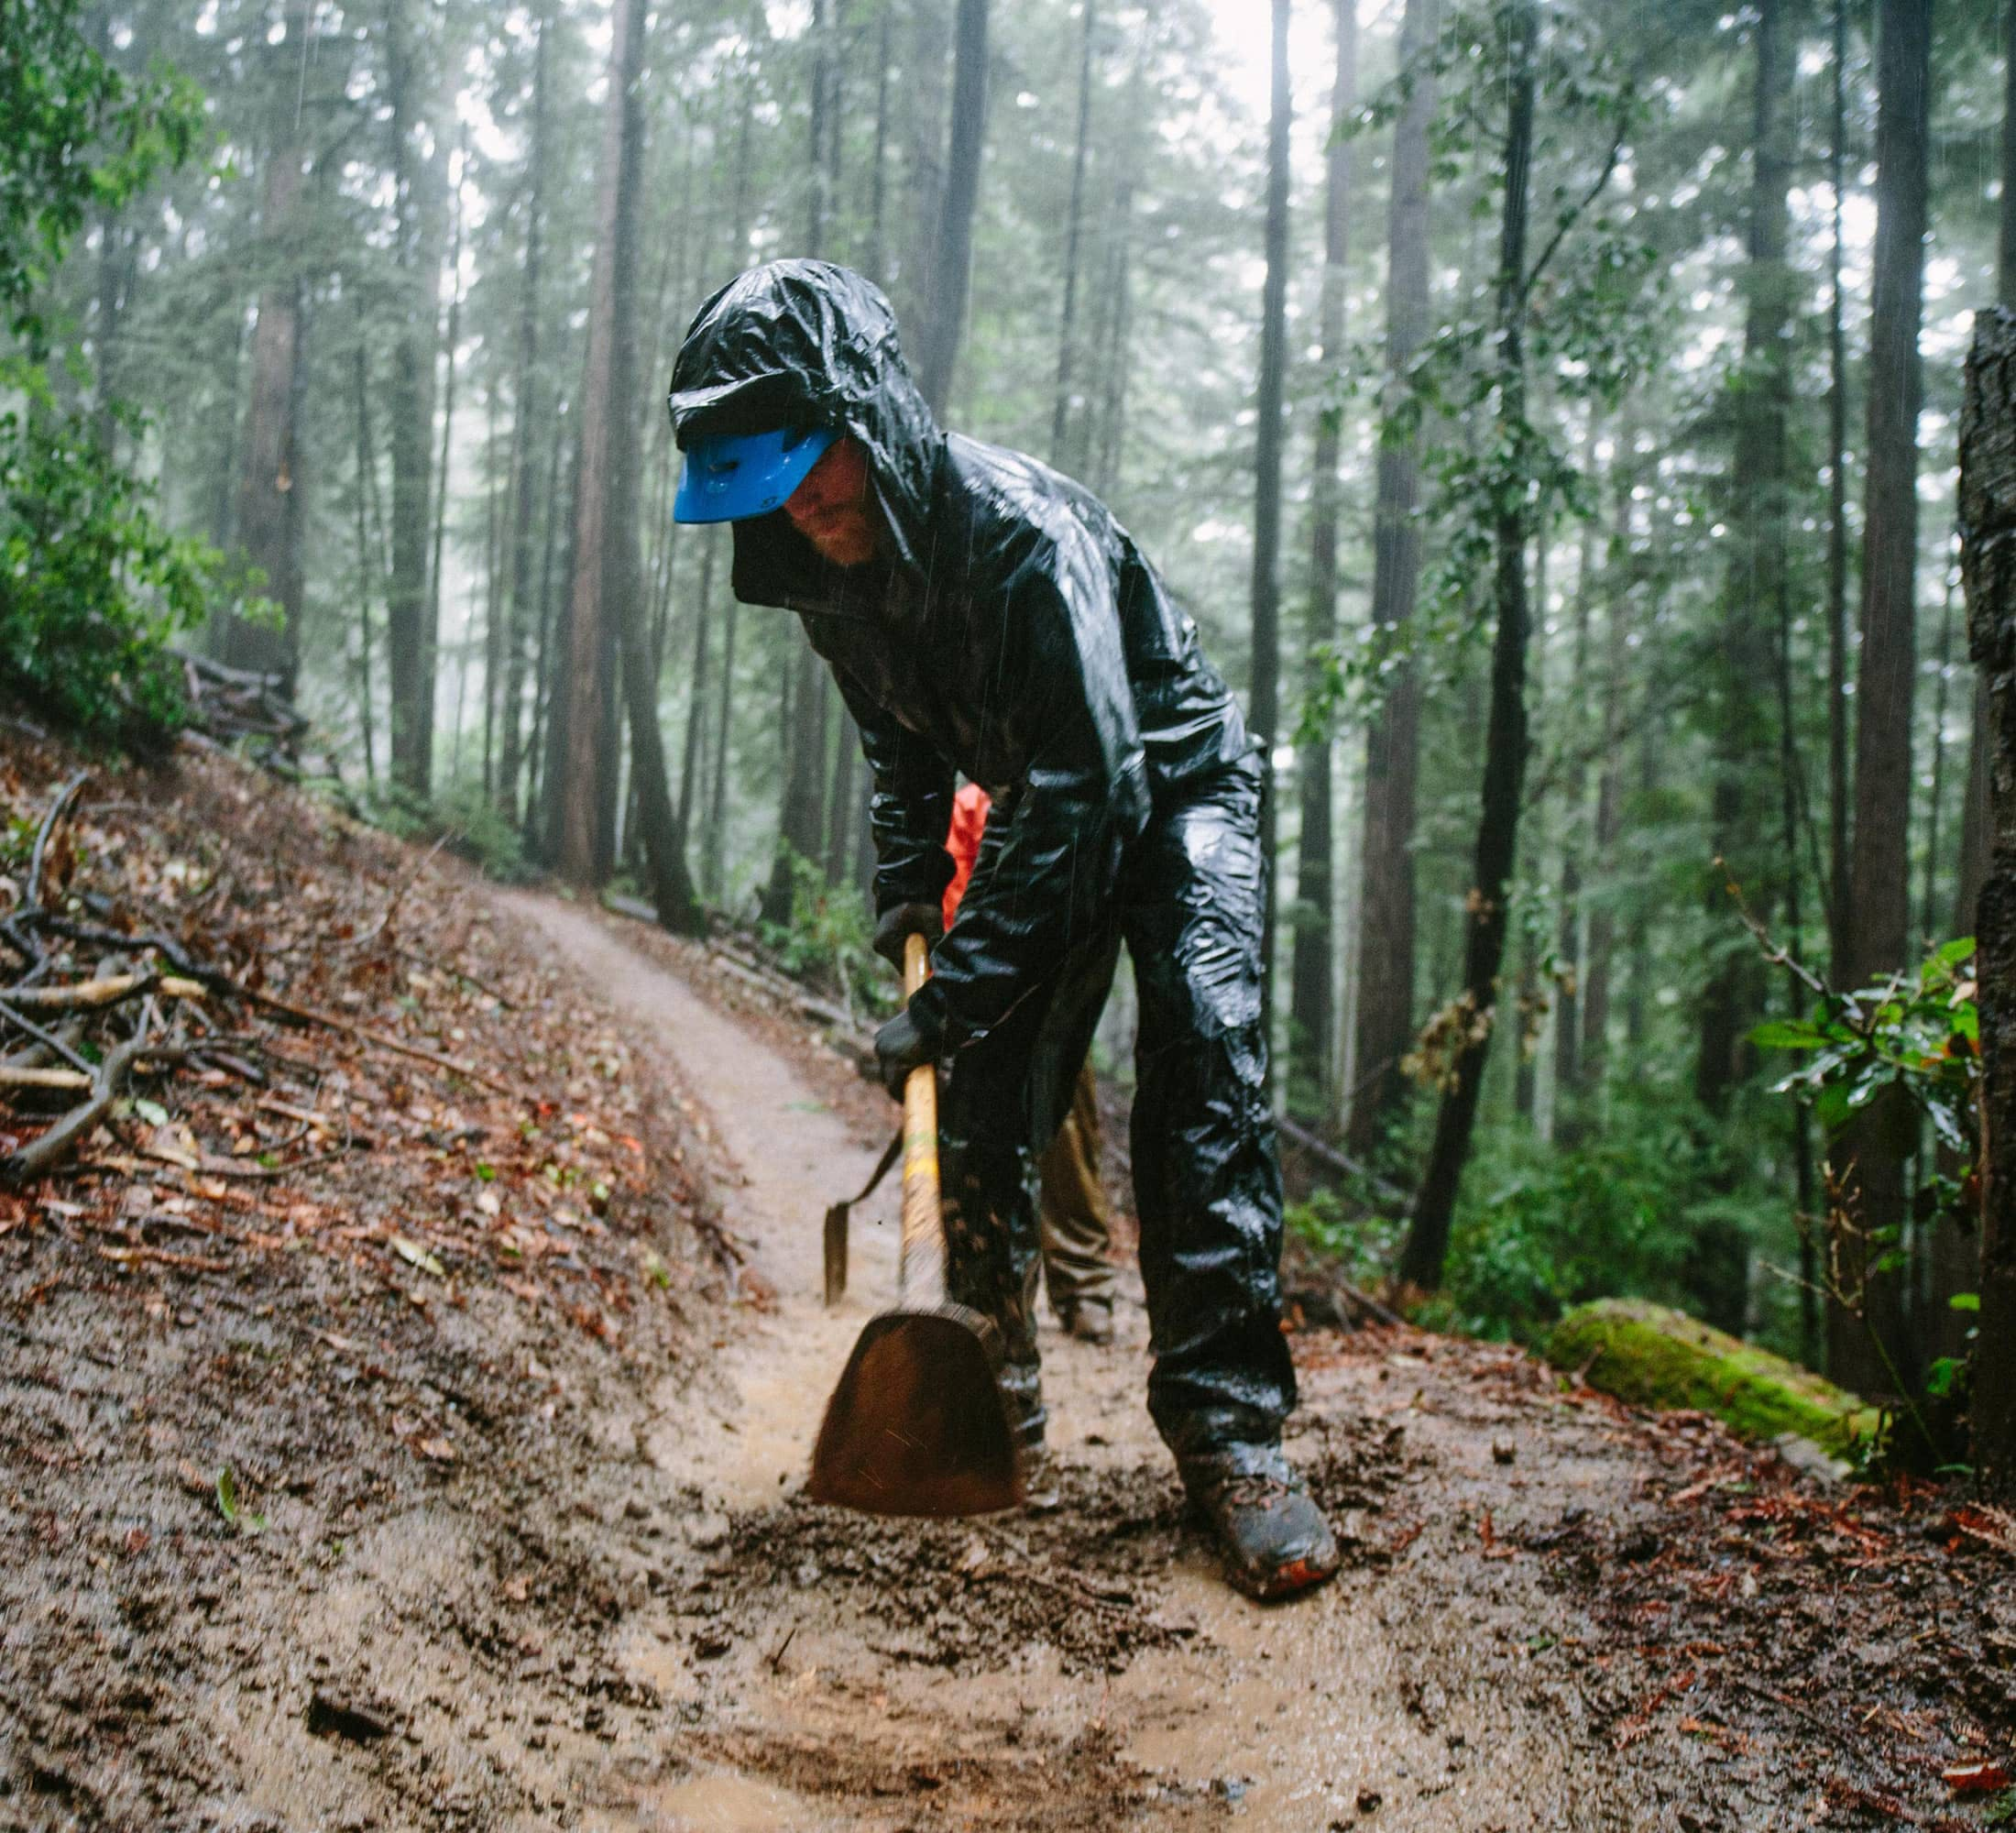 Trail maintenance with Land Trust of Santa Cruz County in California - Trail worker digging up a portion of the trail